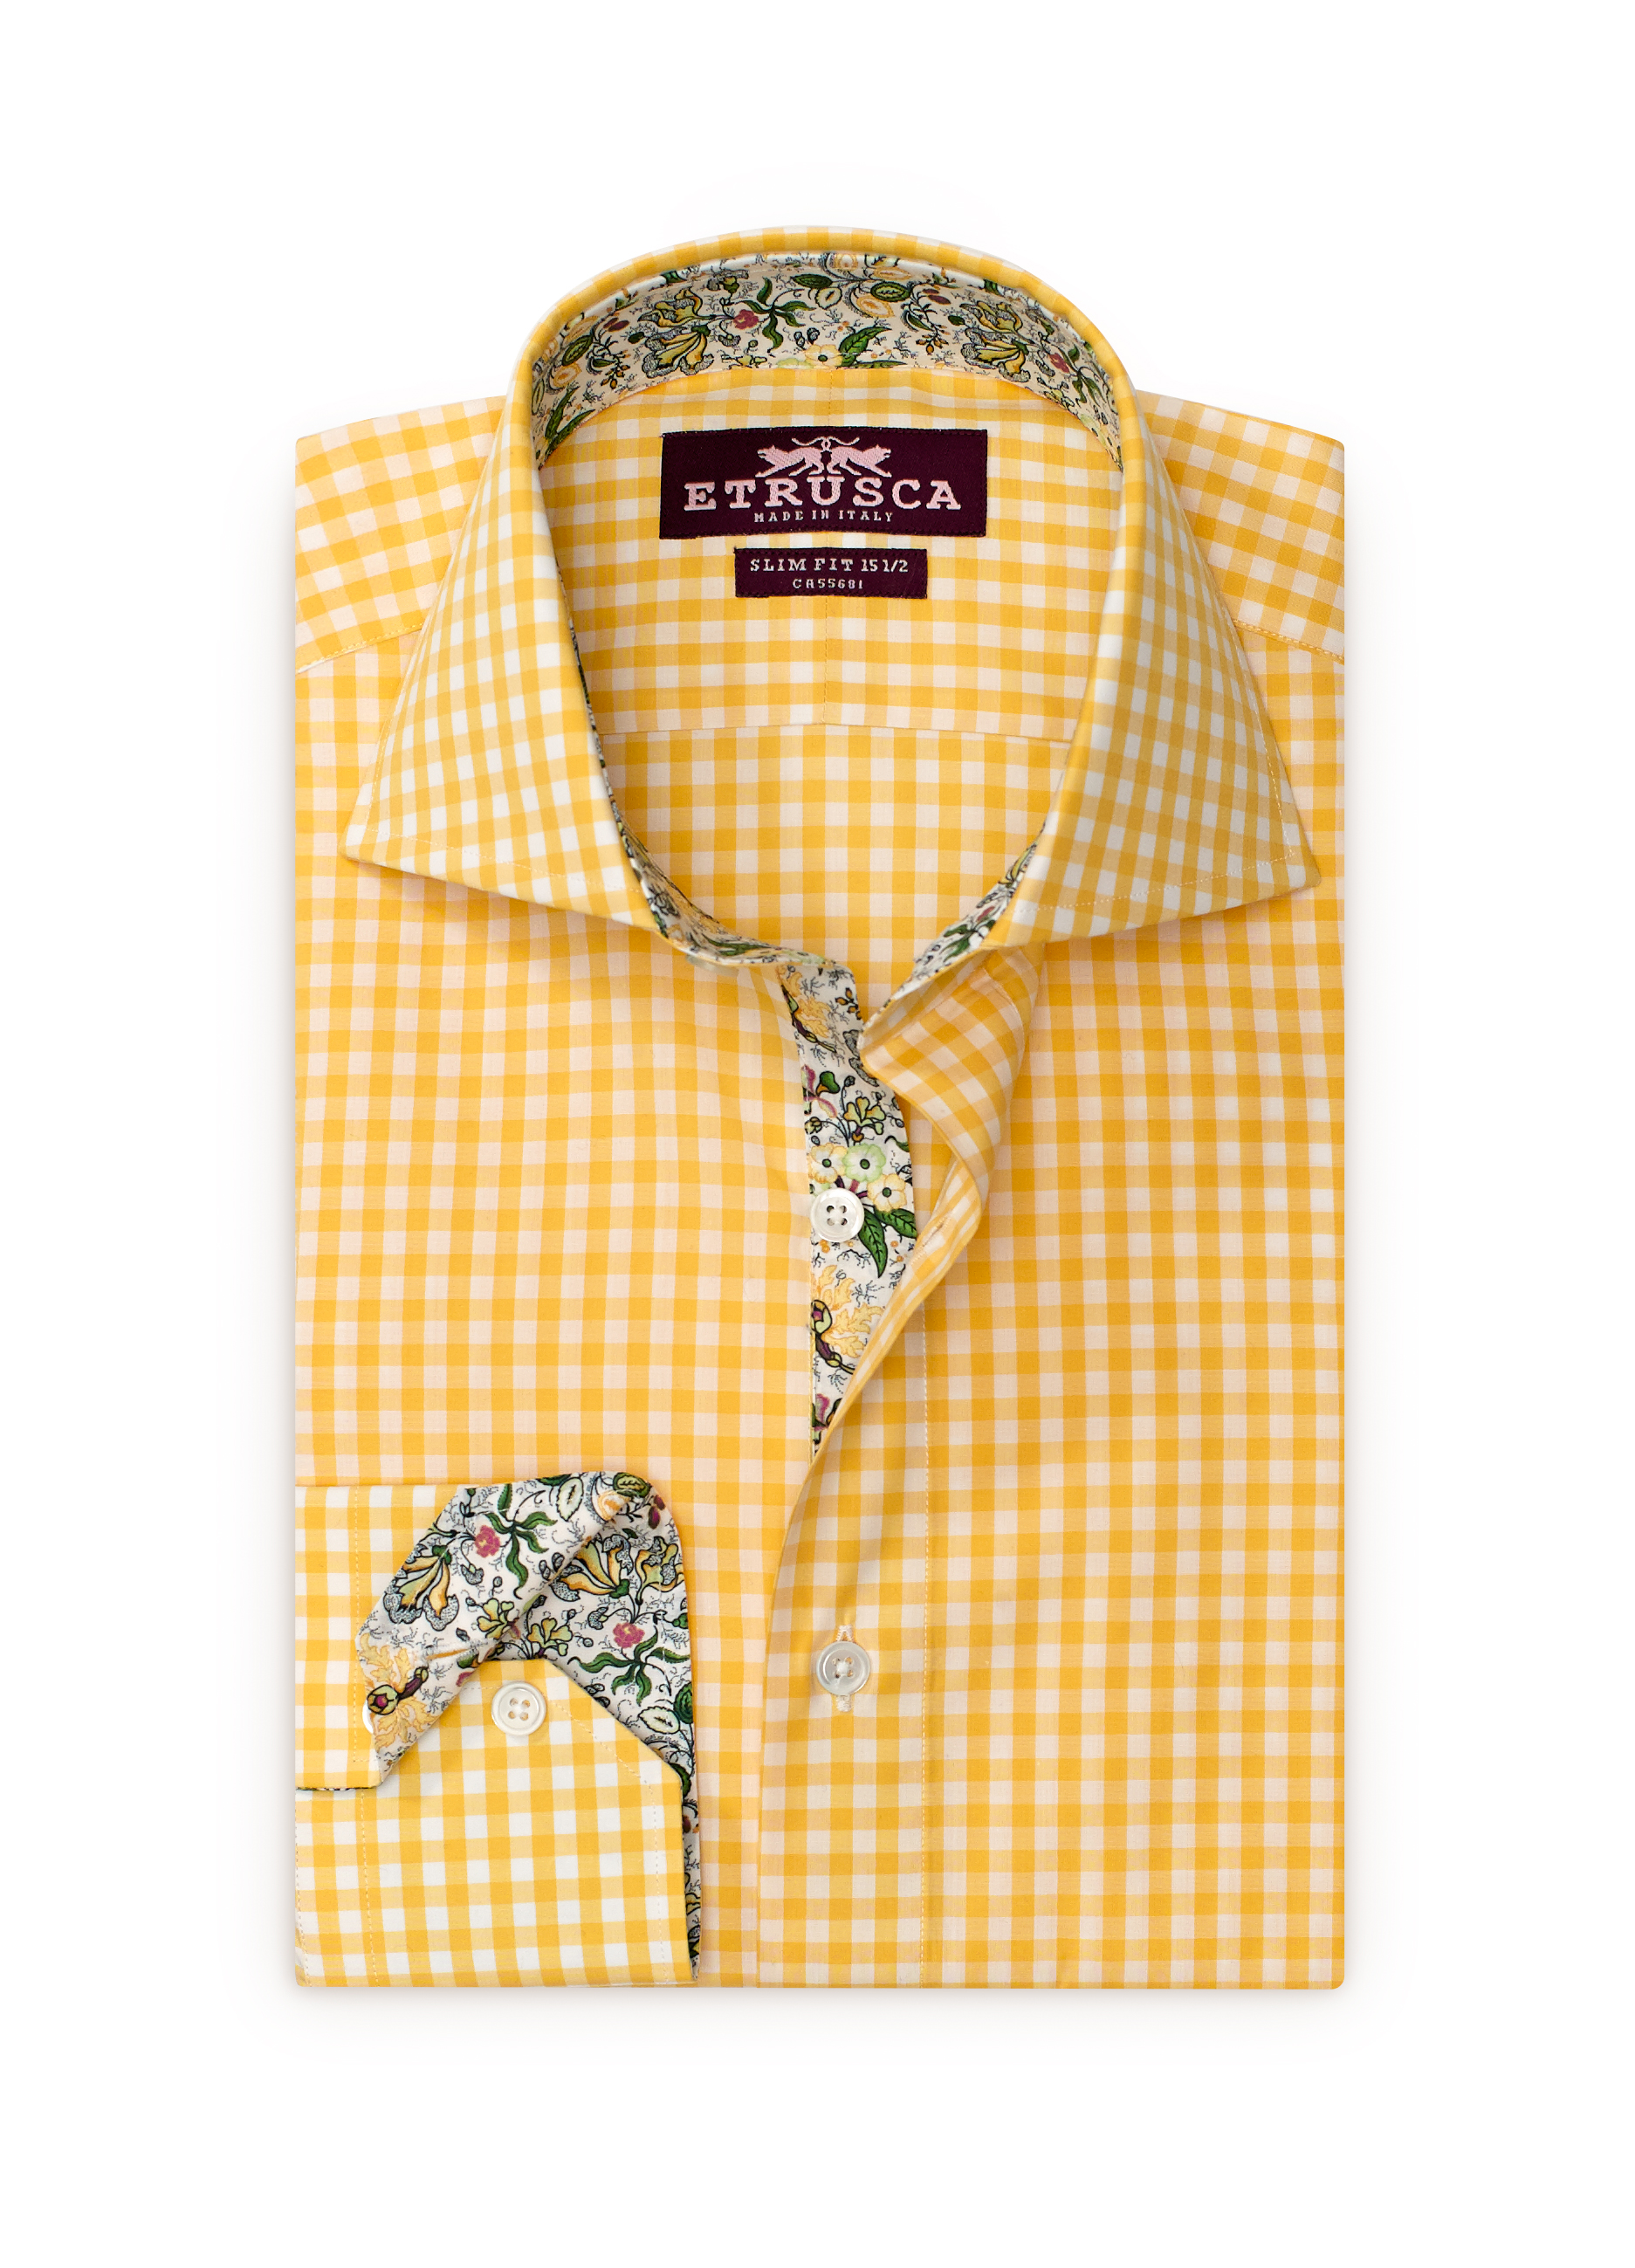 Etrusca-Collezione-Tre-Avvocato-Yellow-Gingham-Floral-Contrast-Folded-002-HR.jpg